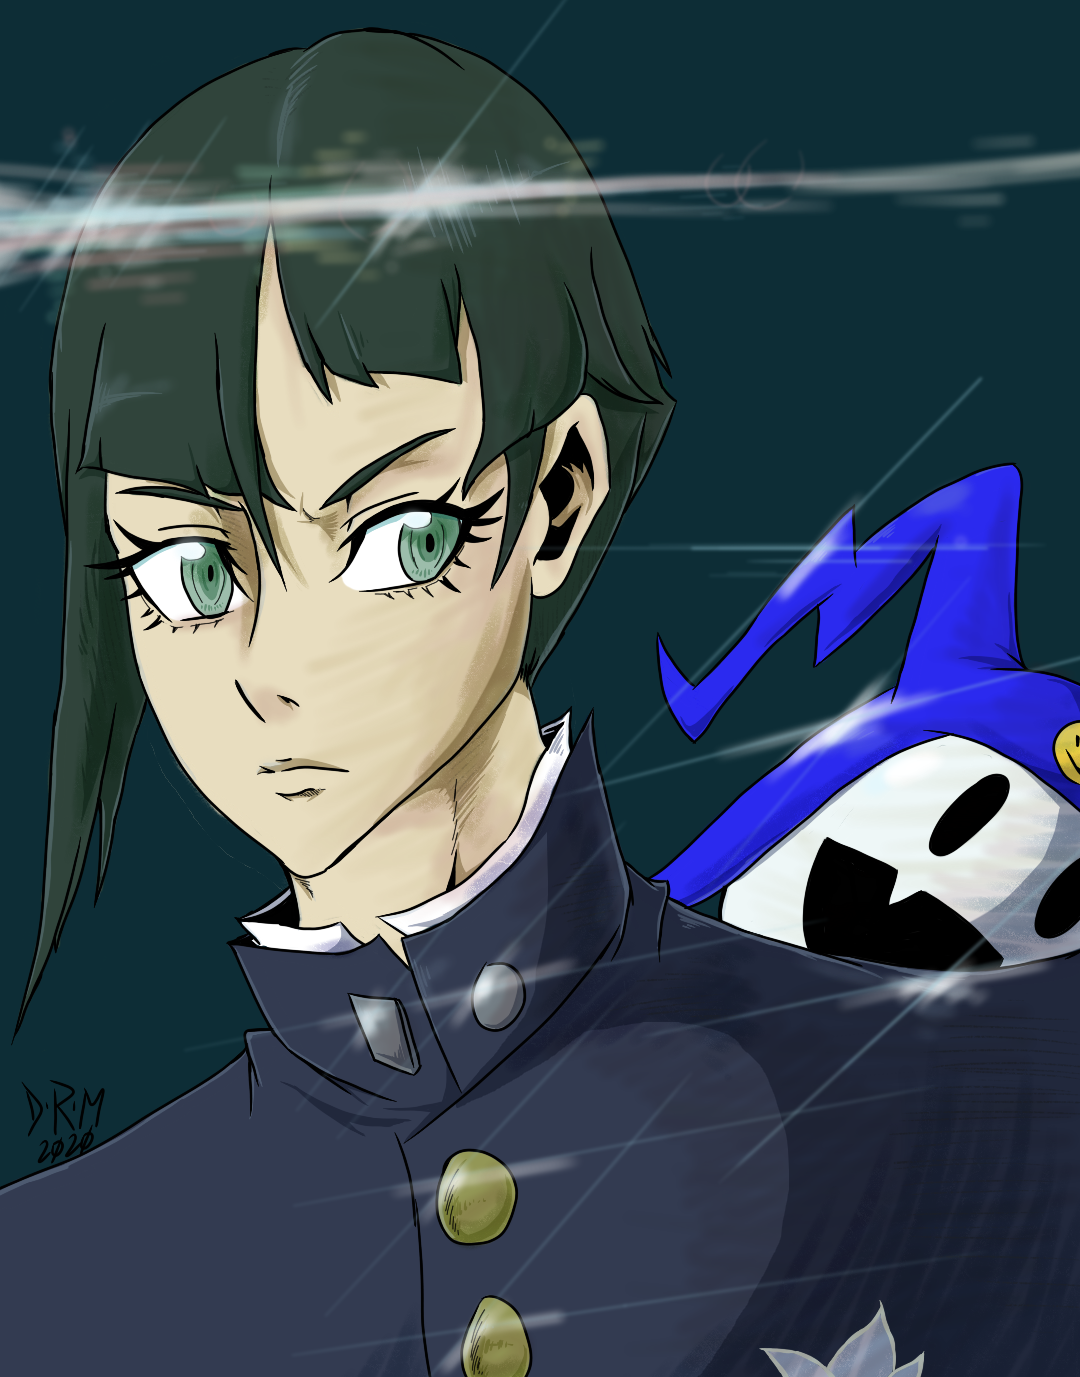 Guess how excited I was for SMT V's recent announcement trailer.